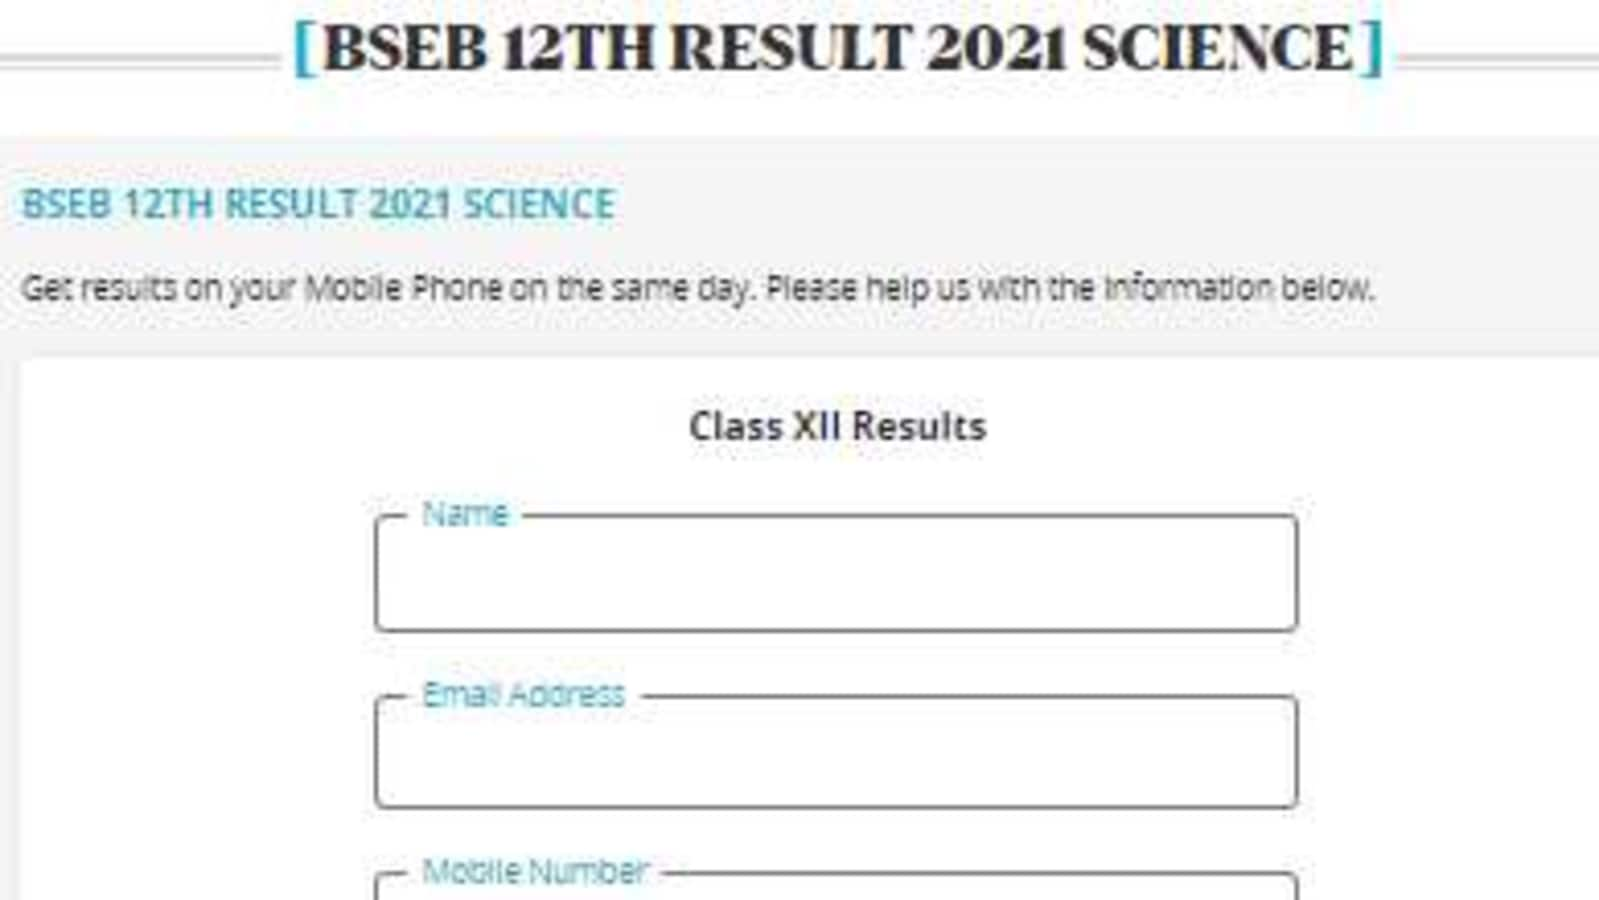 Bihar Board 12th Result 2021 tomorrow, Register here to get BSEB inter results - Hindustan Times